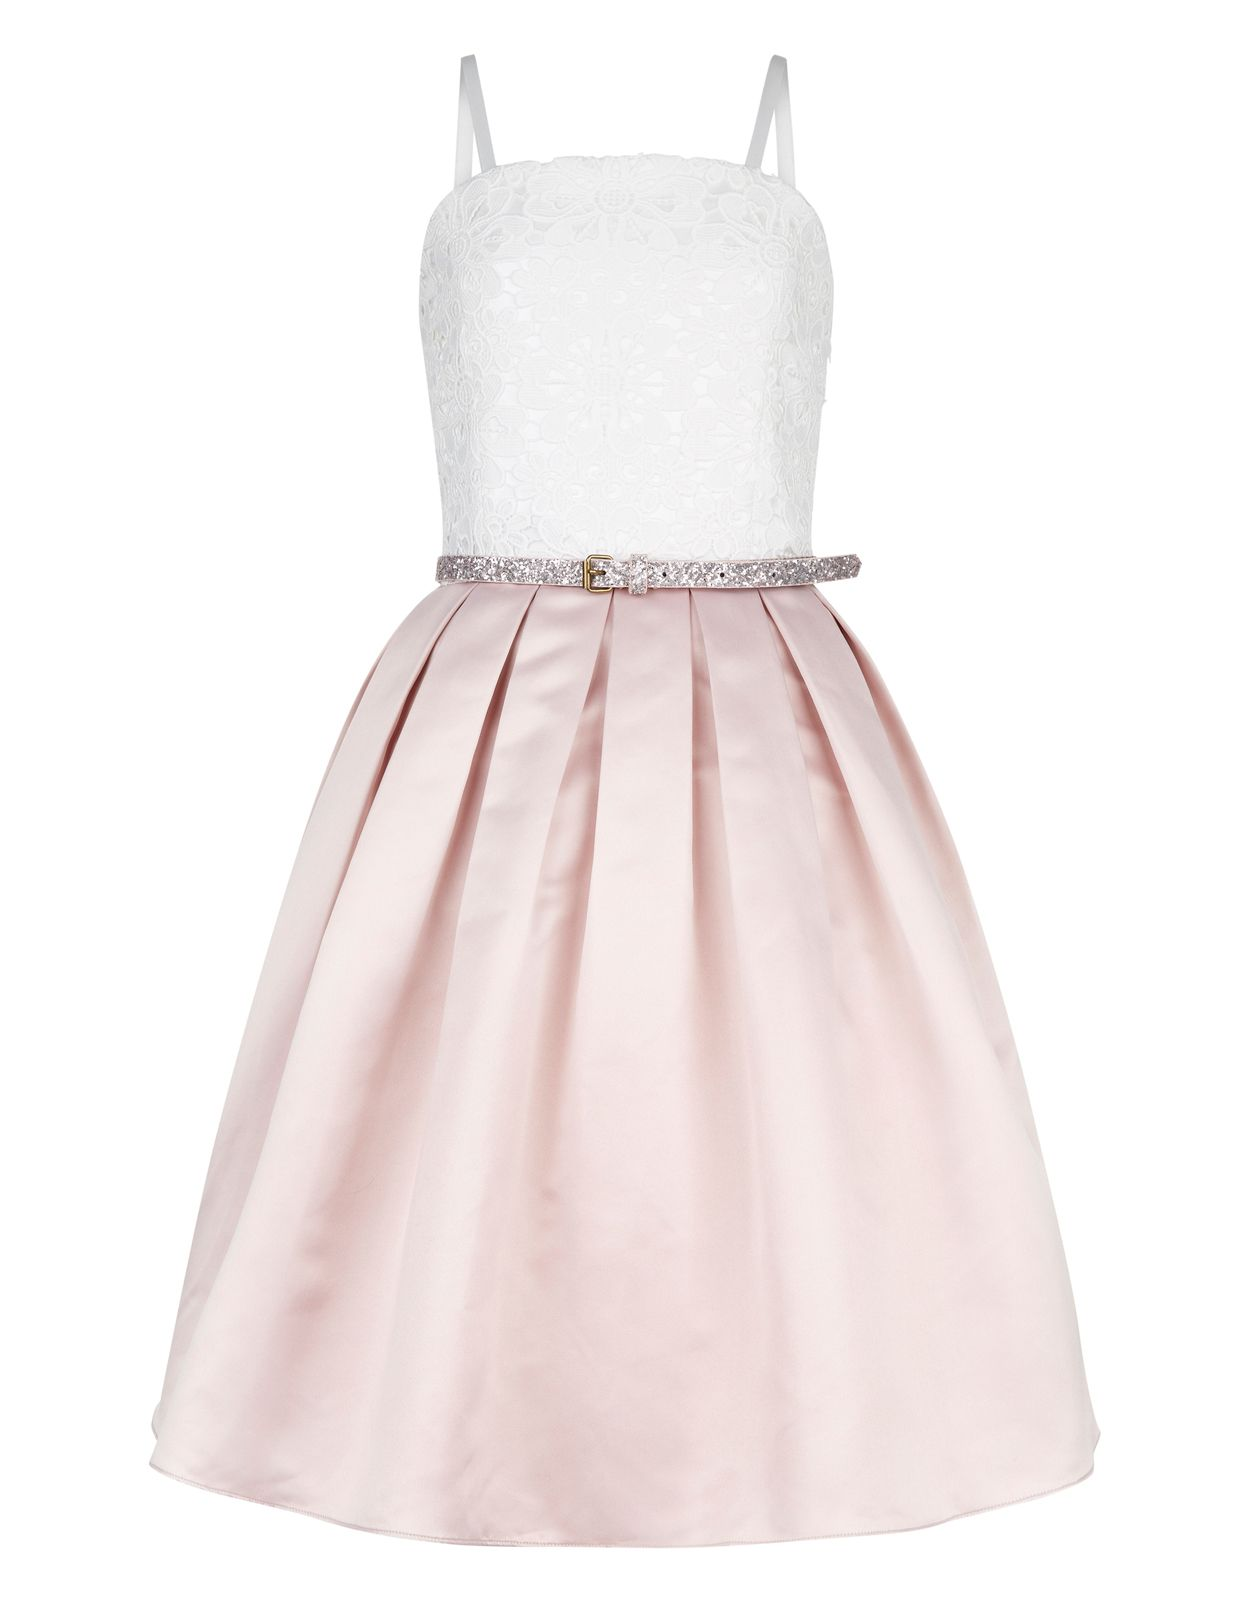 Dallas dress pink monsoon great for rachel or claire this